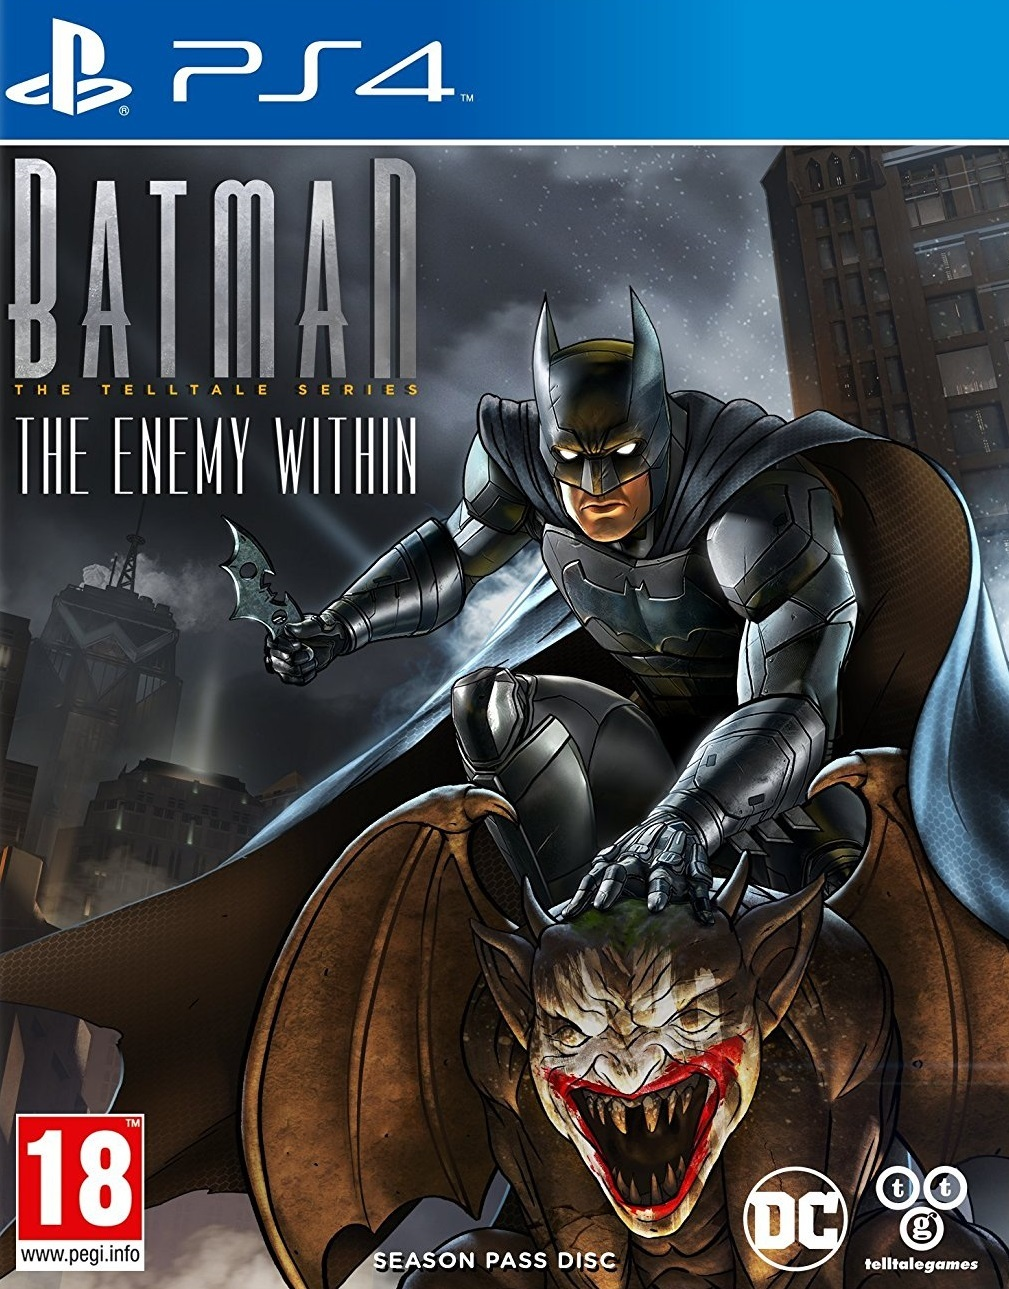 Batman: The Telltale Series - The Enemy Within for PS4 image